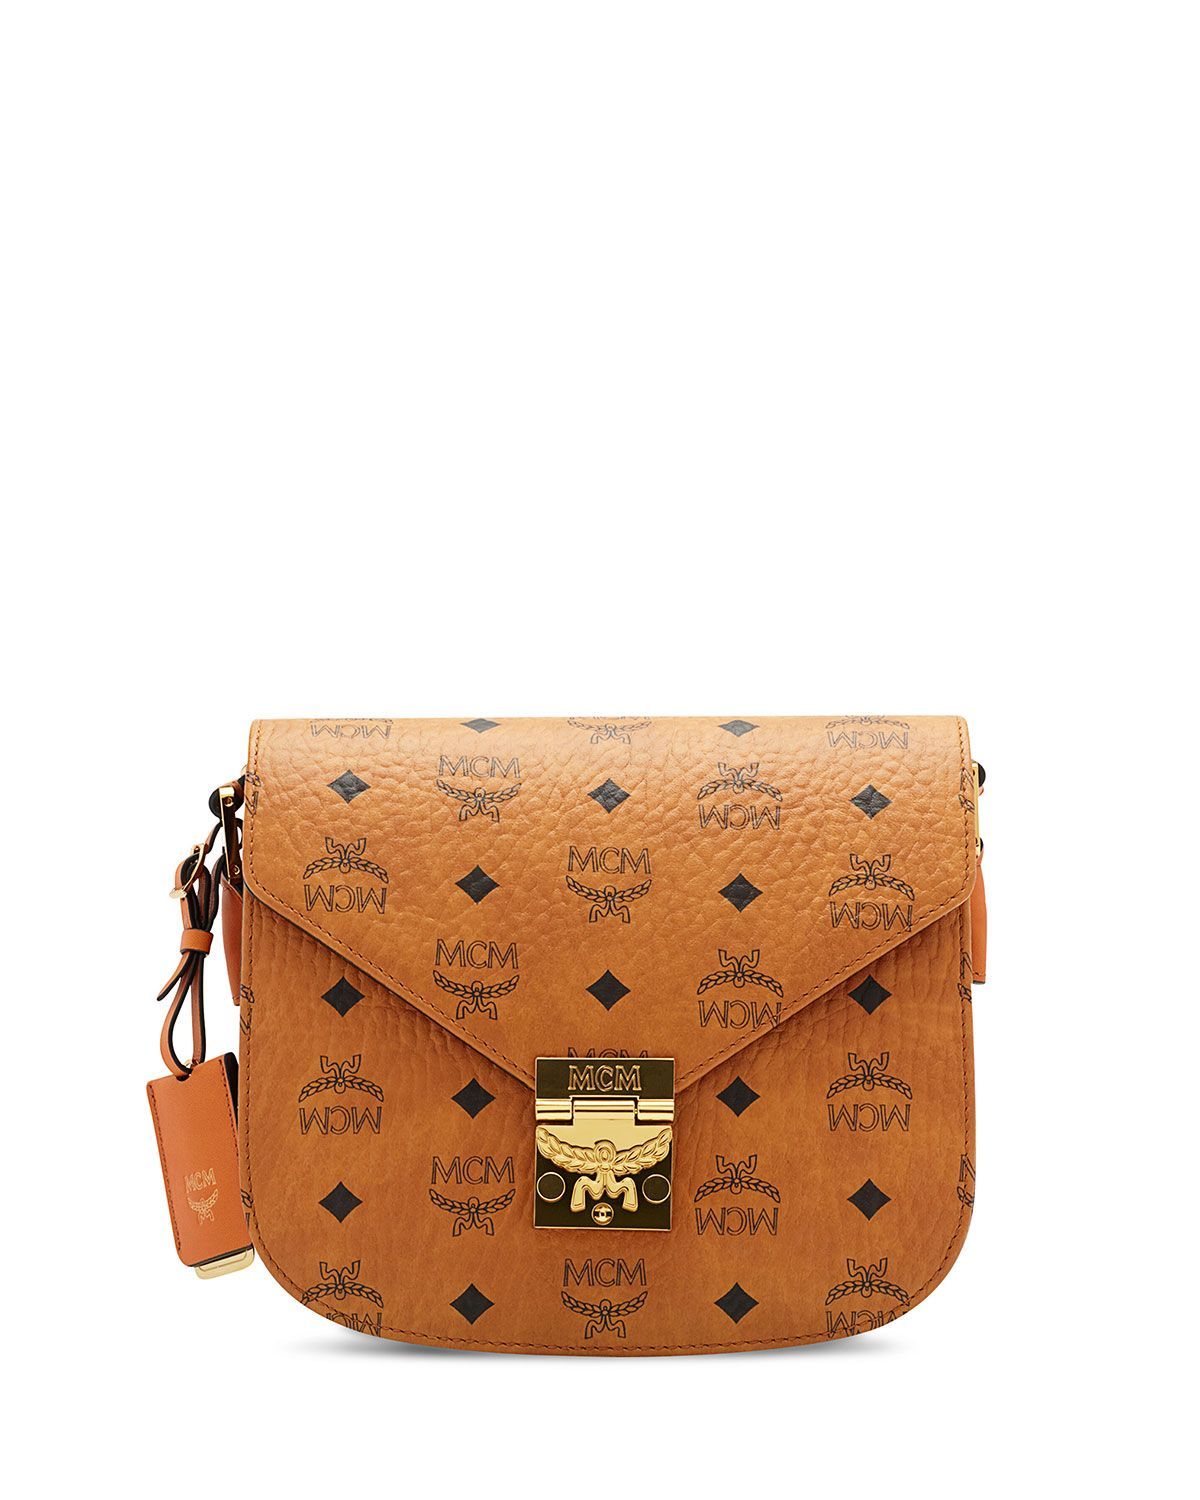 MCM Patricia Visetos Small Shoulder Bag, Cognac | Shoulder